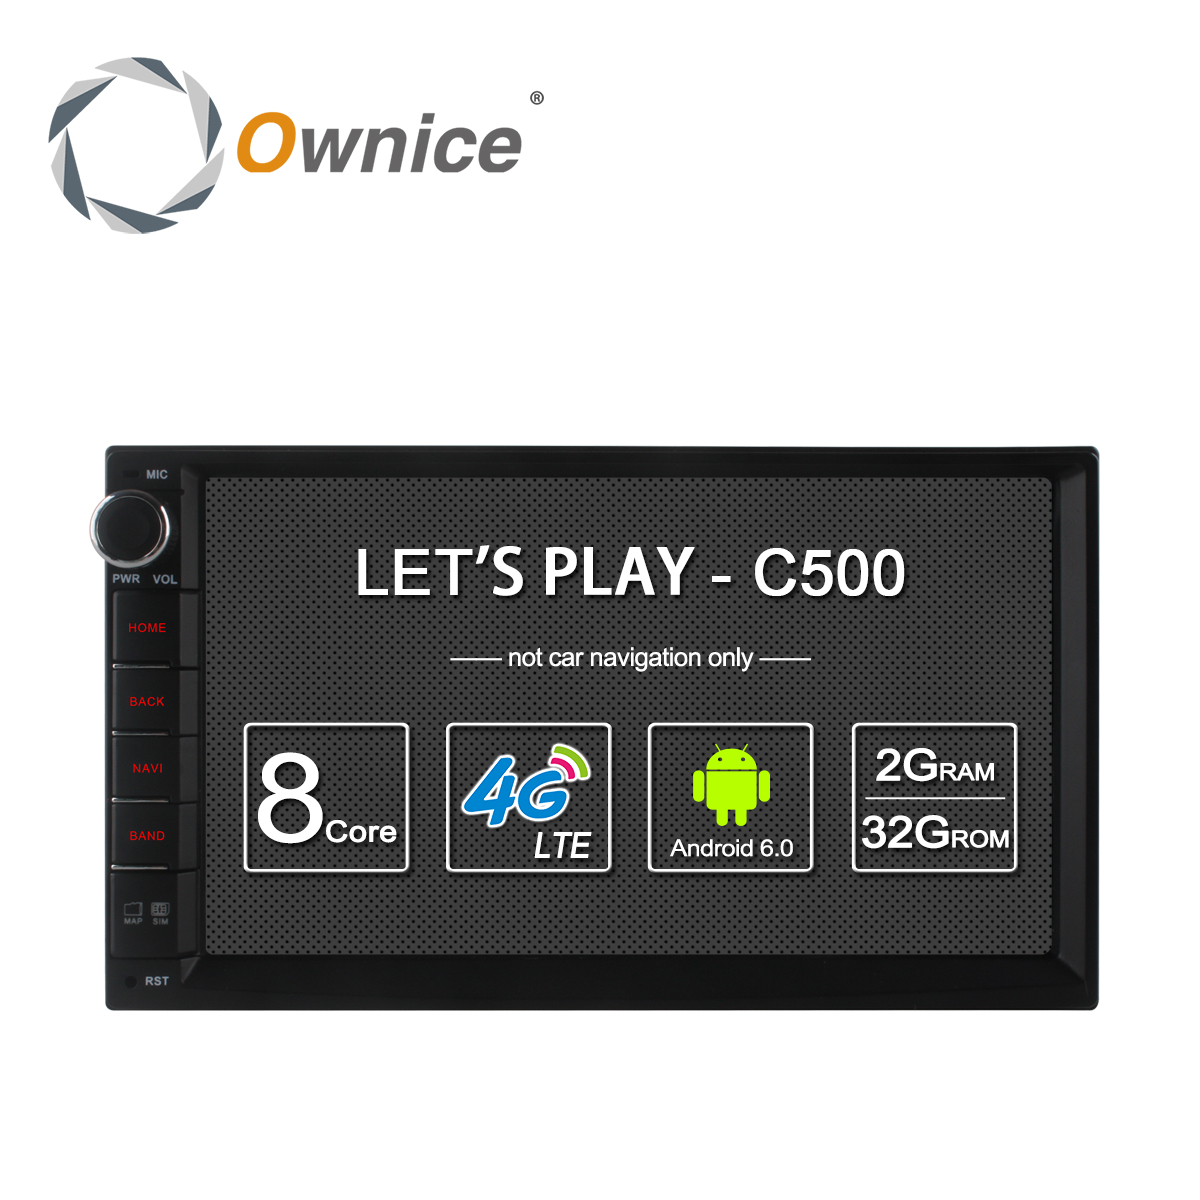 Ownice C500  Android 6.0 Octa Core 2 din Universal For Nissan GPS Navi BT Radio Stereo Audio Player(No DVD) Build-in 4G Moudule 2 din quad core android 4 4 dvd плеер автомобиля для toyota corolla camry rav4 previa vios hilux прадо terios gps navi радио mp3 wi fi